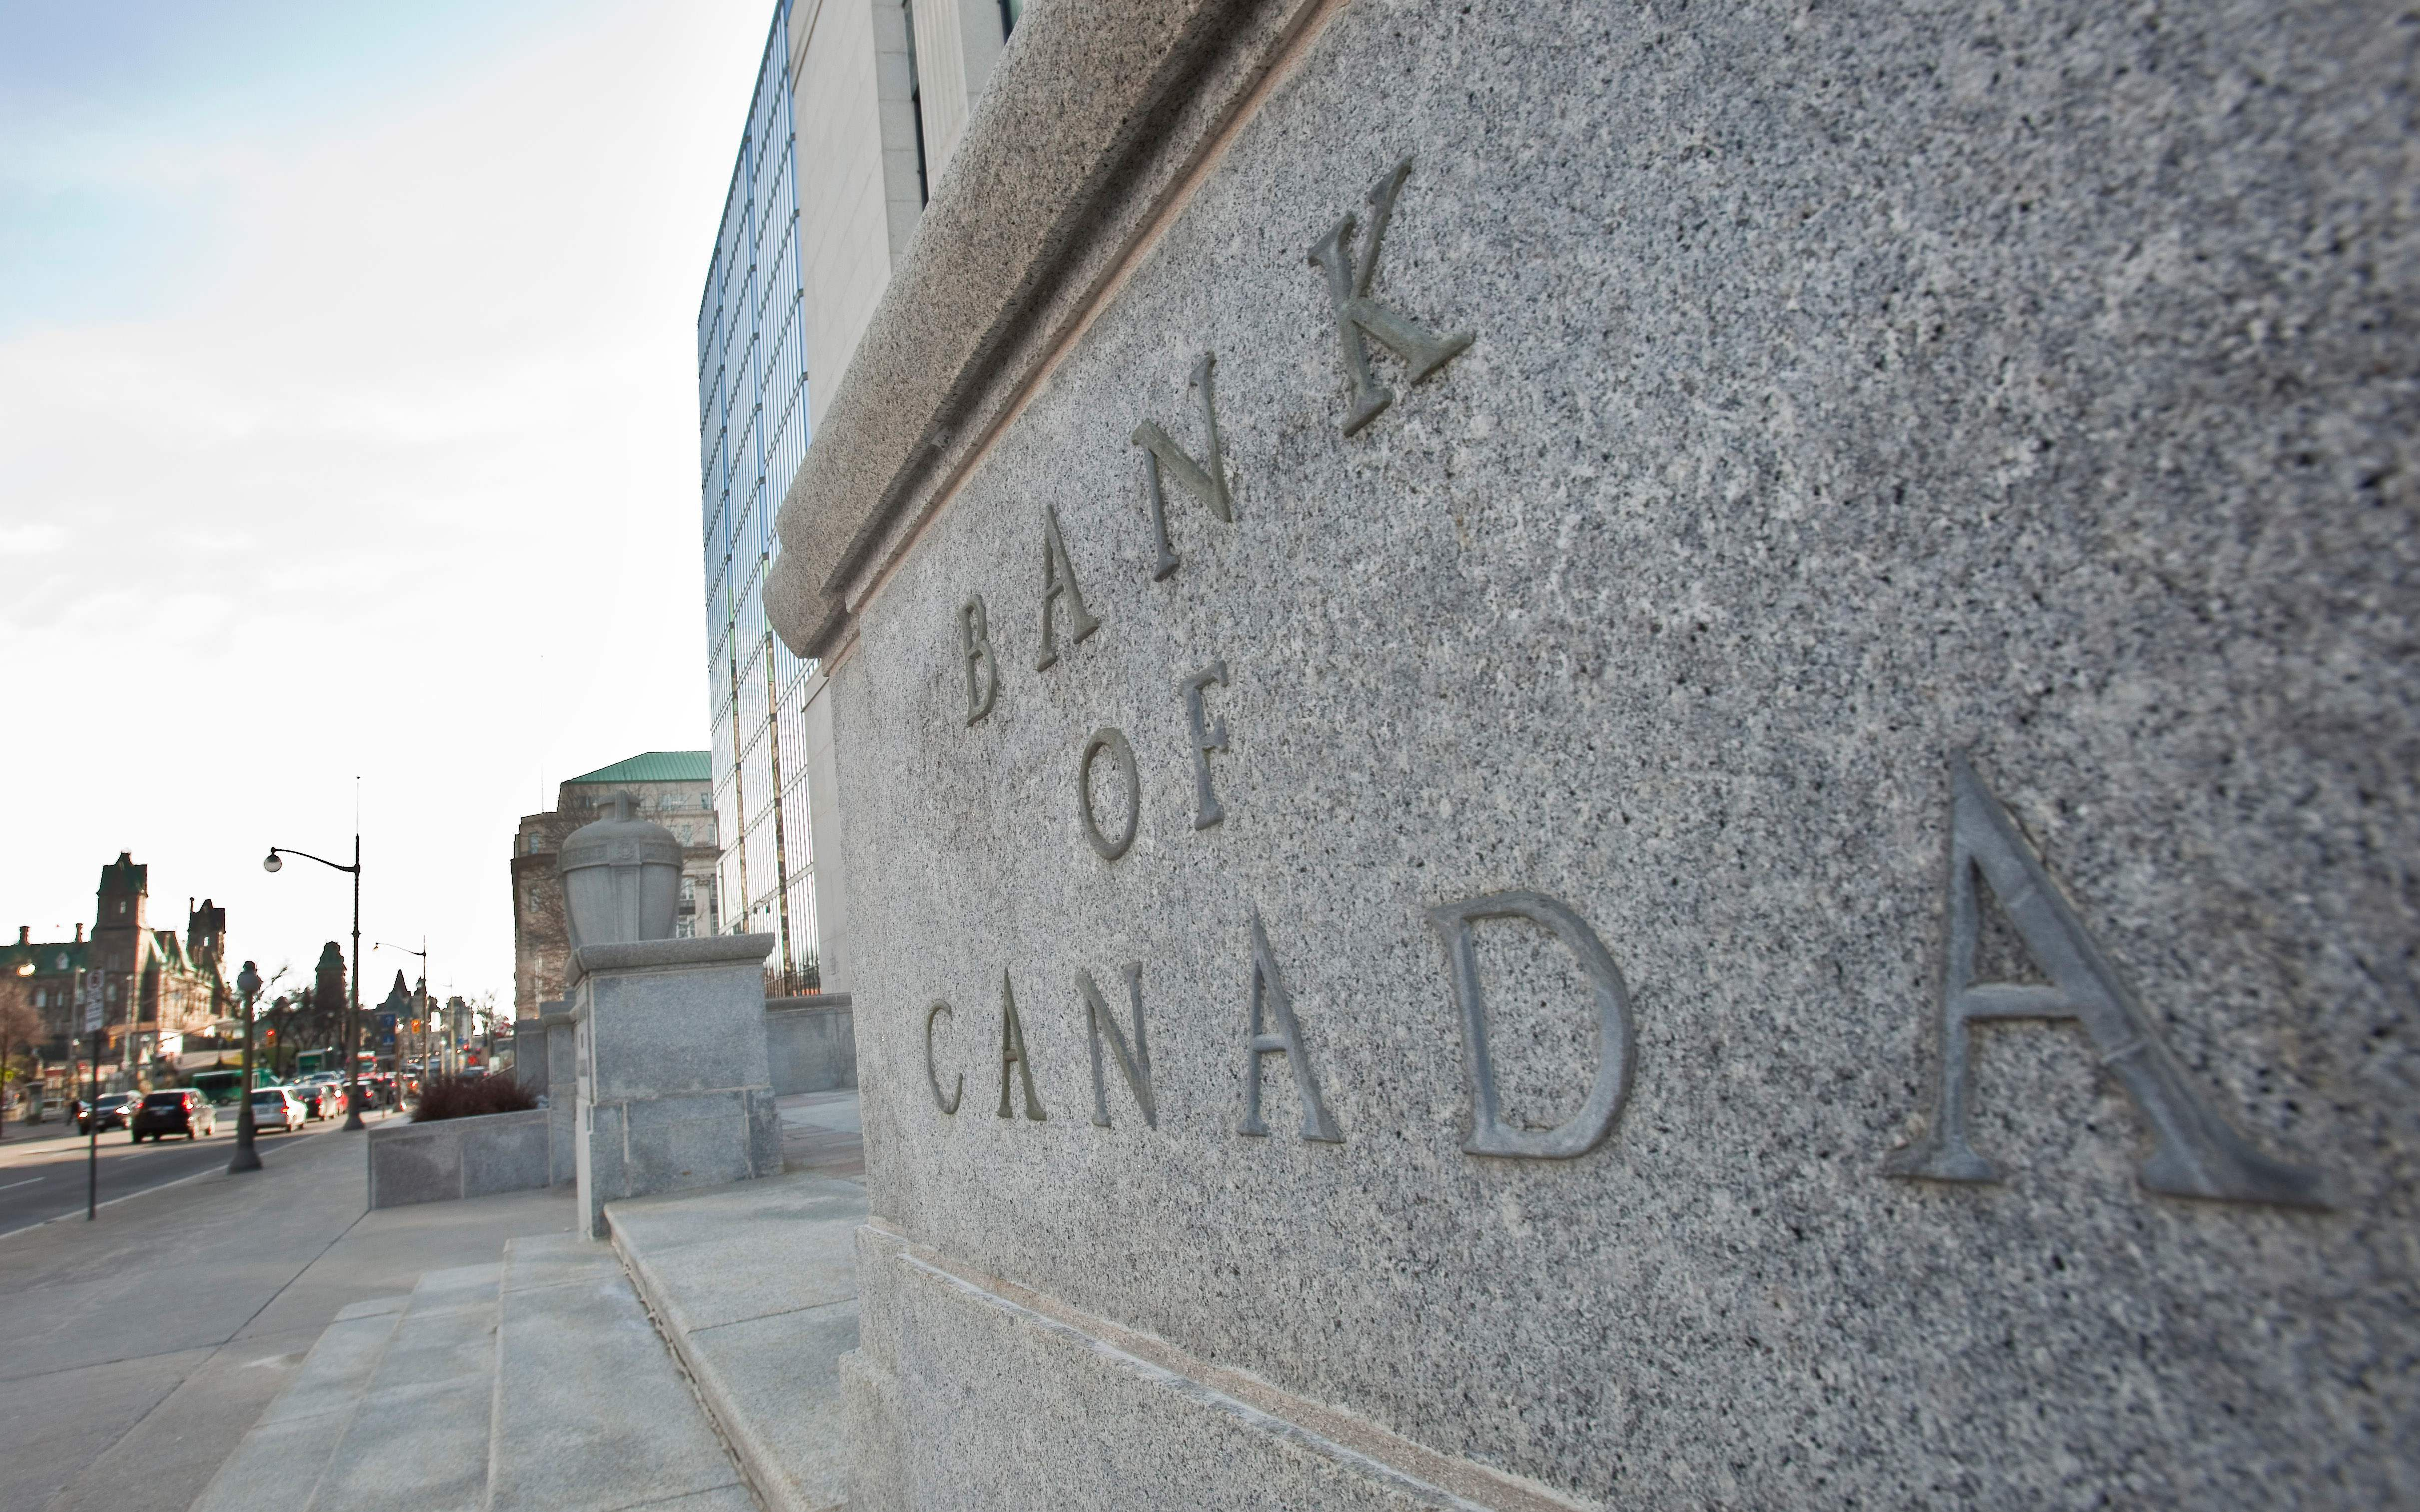 Bank of Canada to take control of key interest rate benchmark